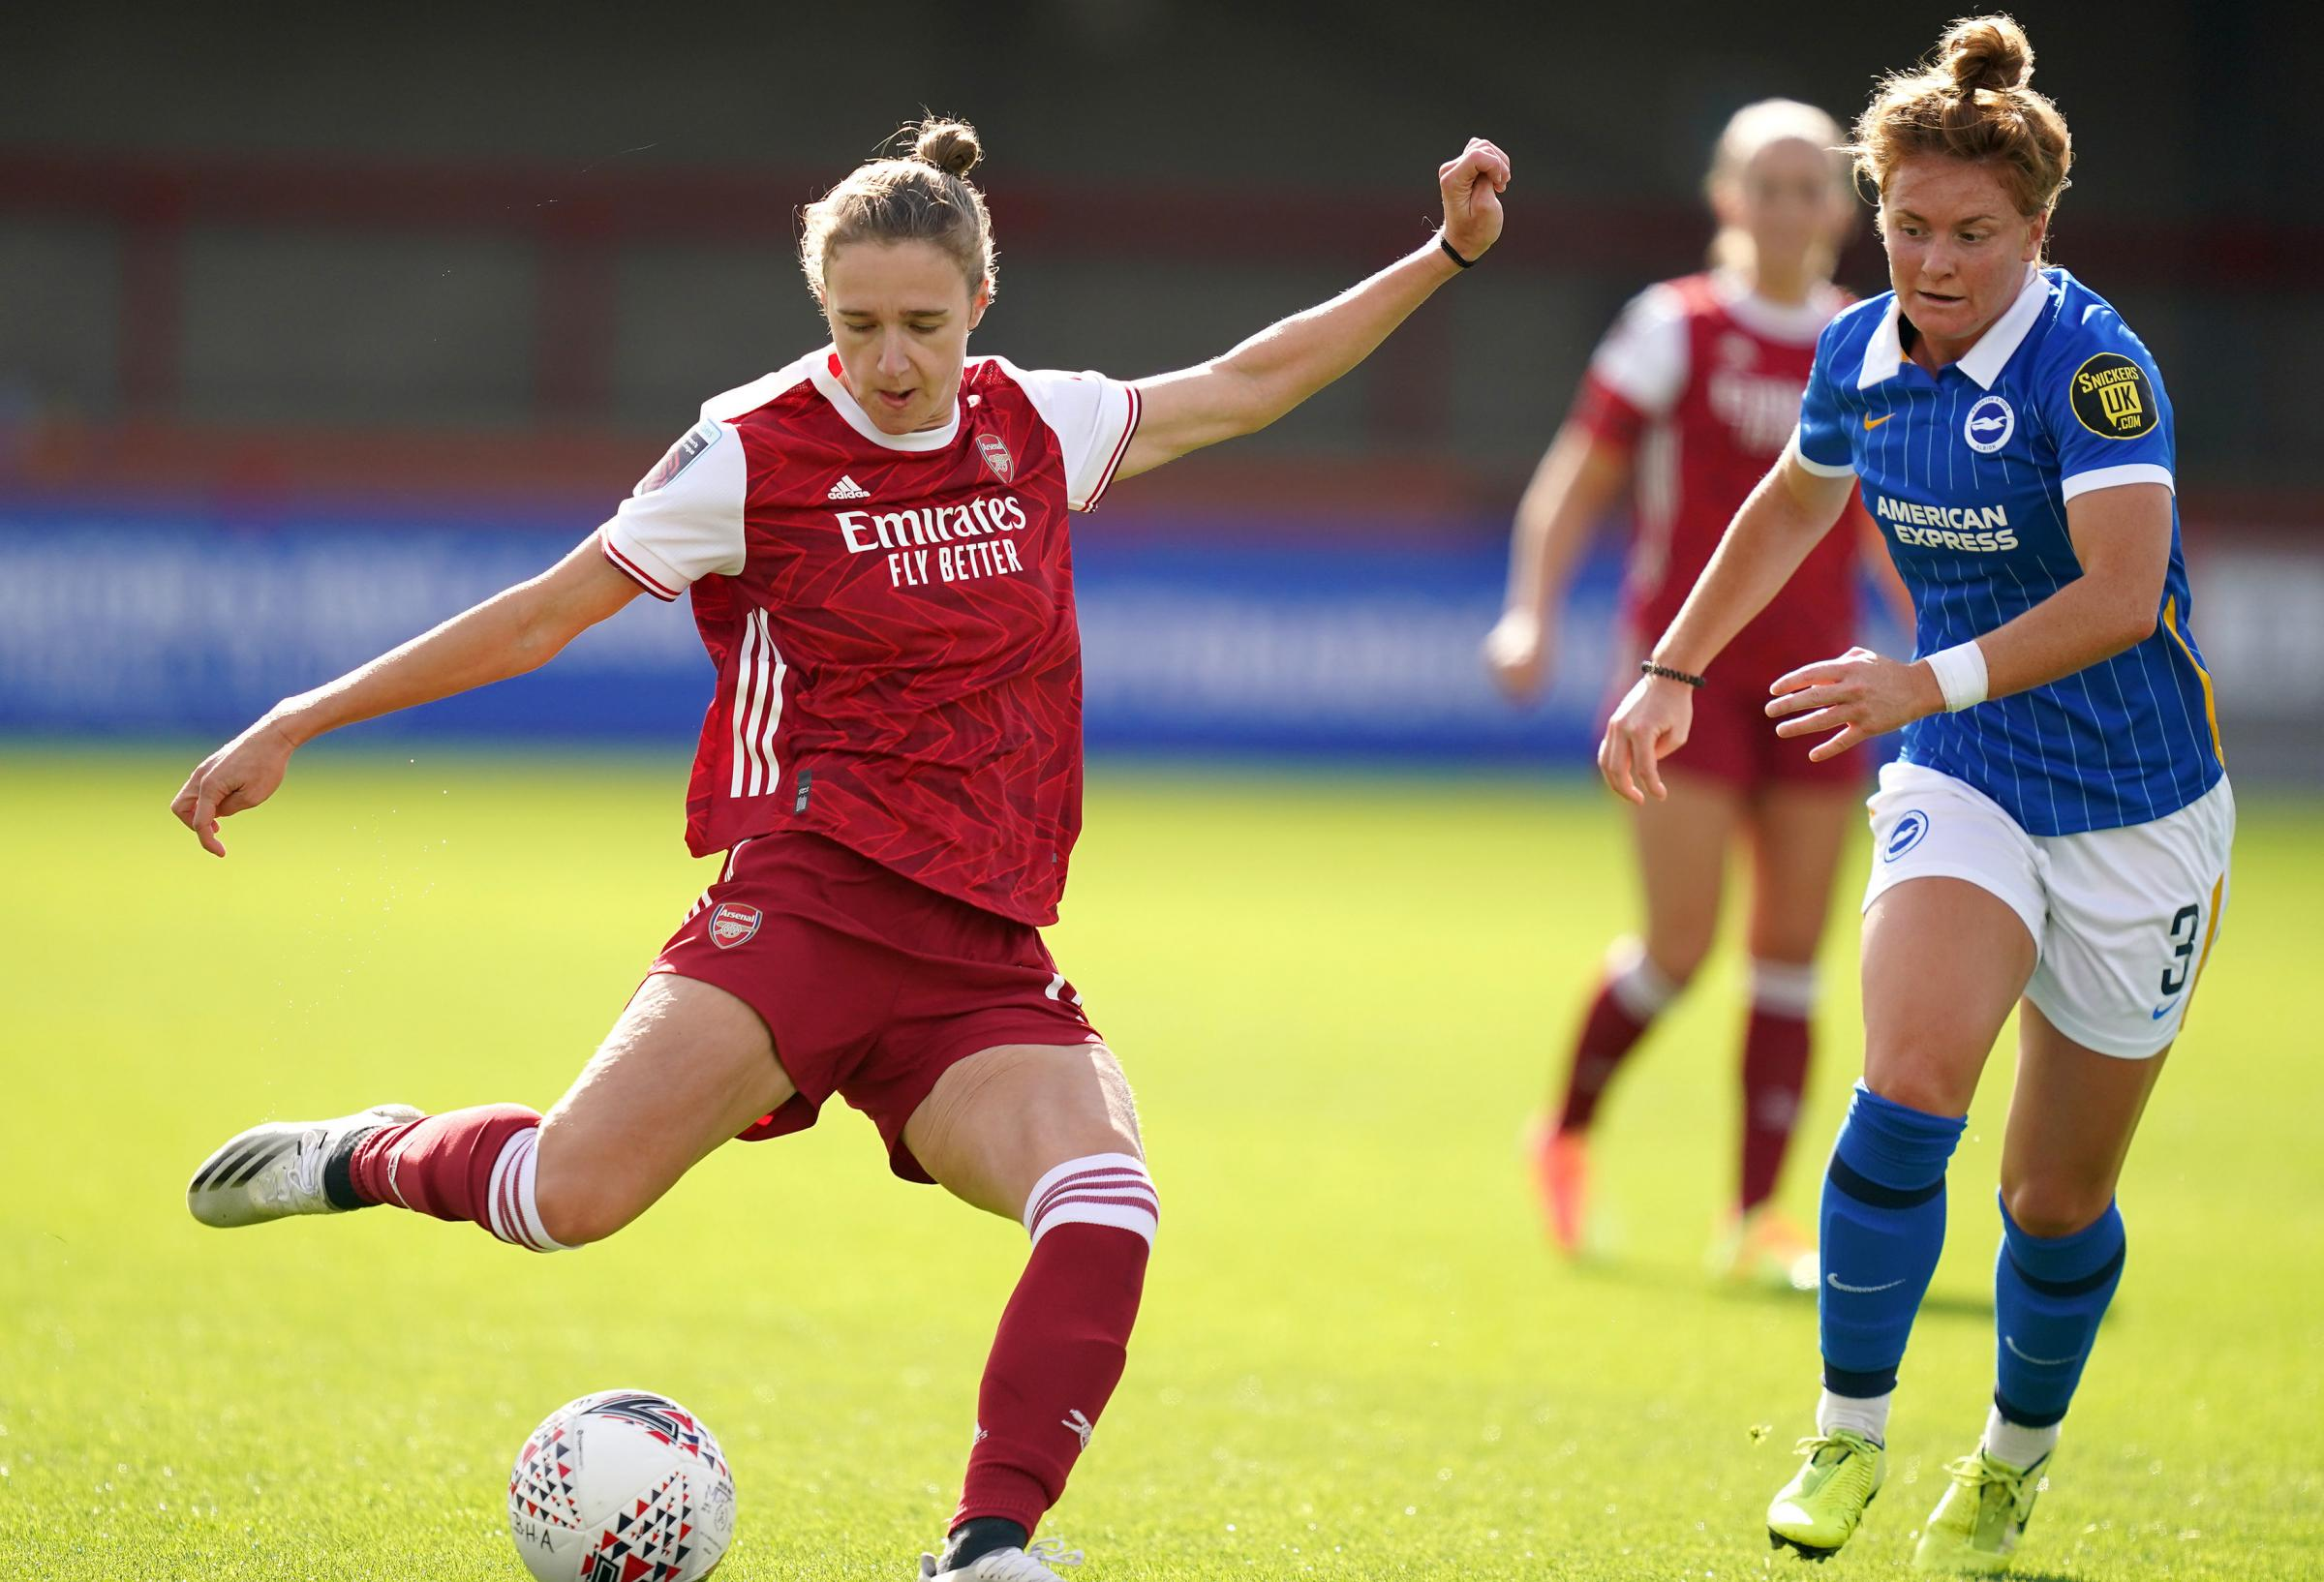 Albion suffer defeat to Arsenal in the WSL